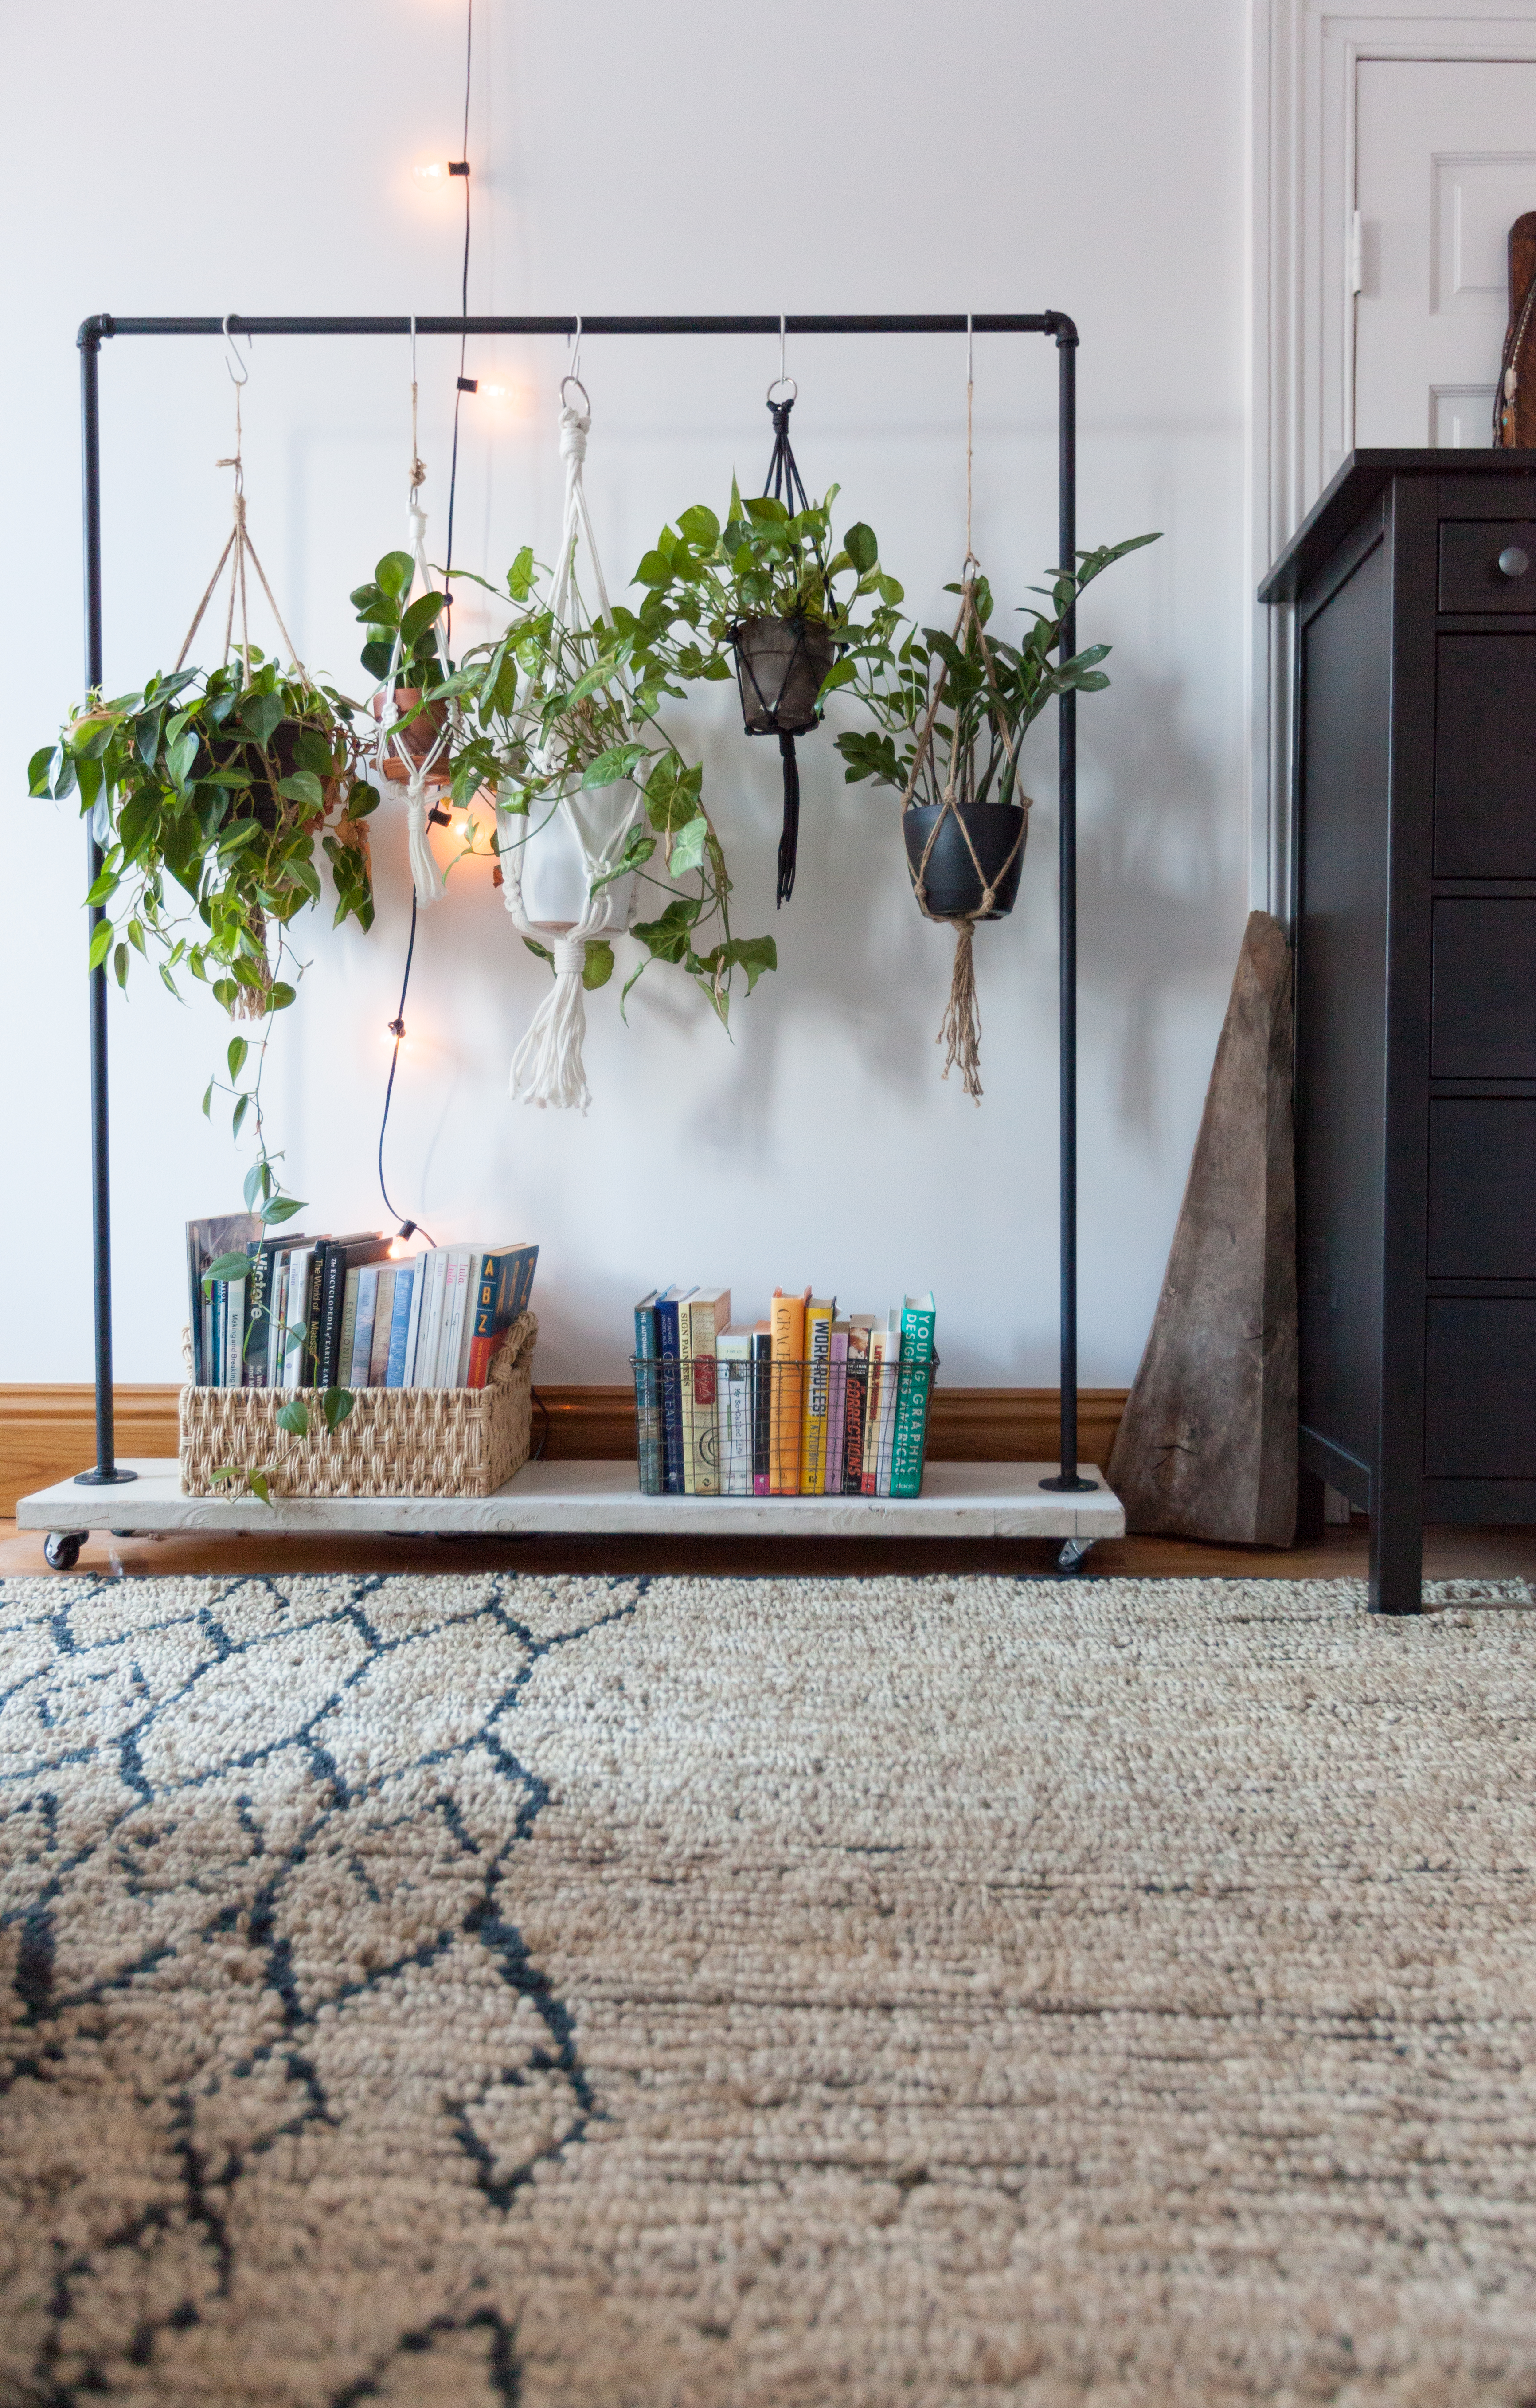 How To Display Houseplants 65 Of Our Favorite Plant Display Ideas Apartment Therapy